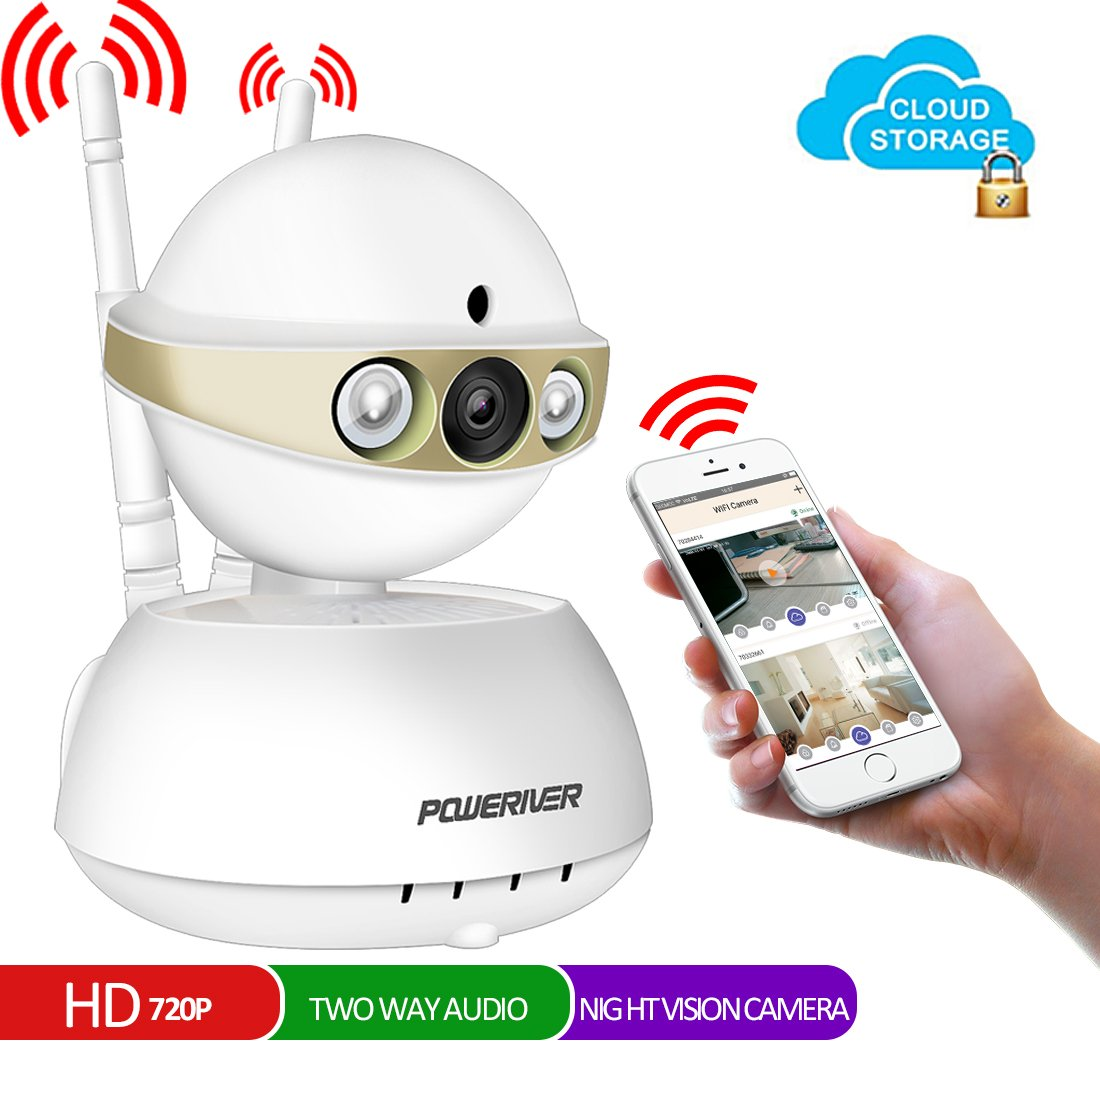 Home Camera,POWERIVER WiFi IP Indoor Security System with Motion Detection,Two-Way Audio and Night Vision for Baby/Pet / Front Porch Monitor,Remote Control with iOS, Android, PC APP(Light Gold)